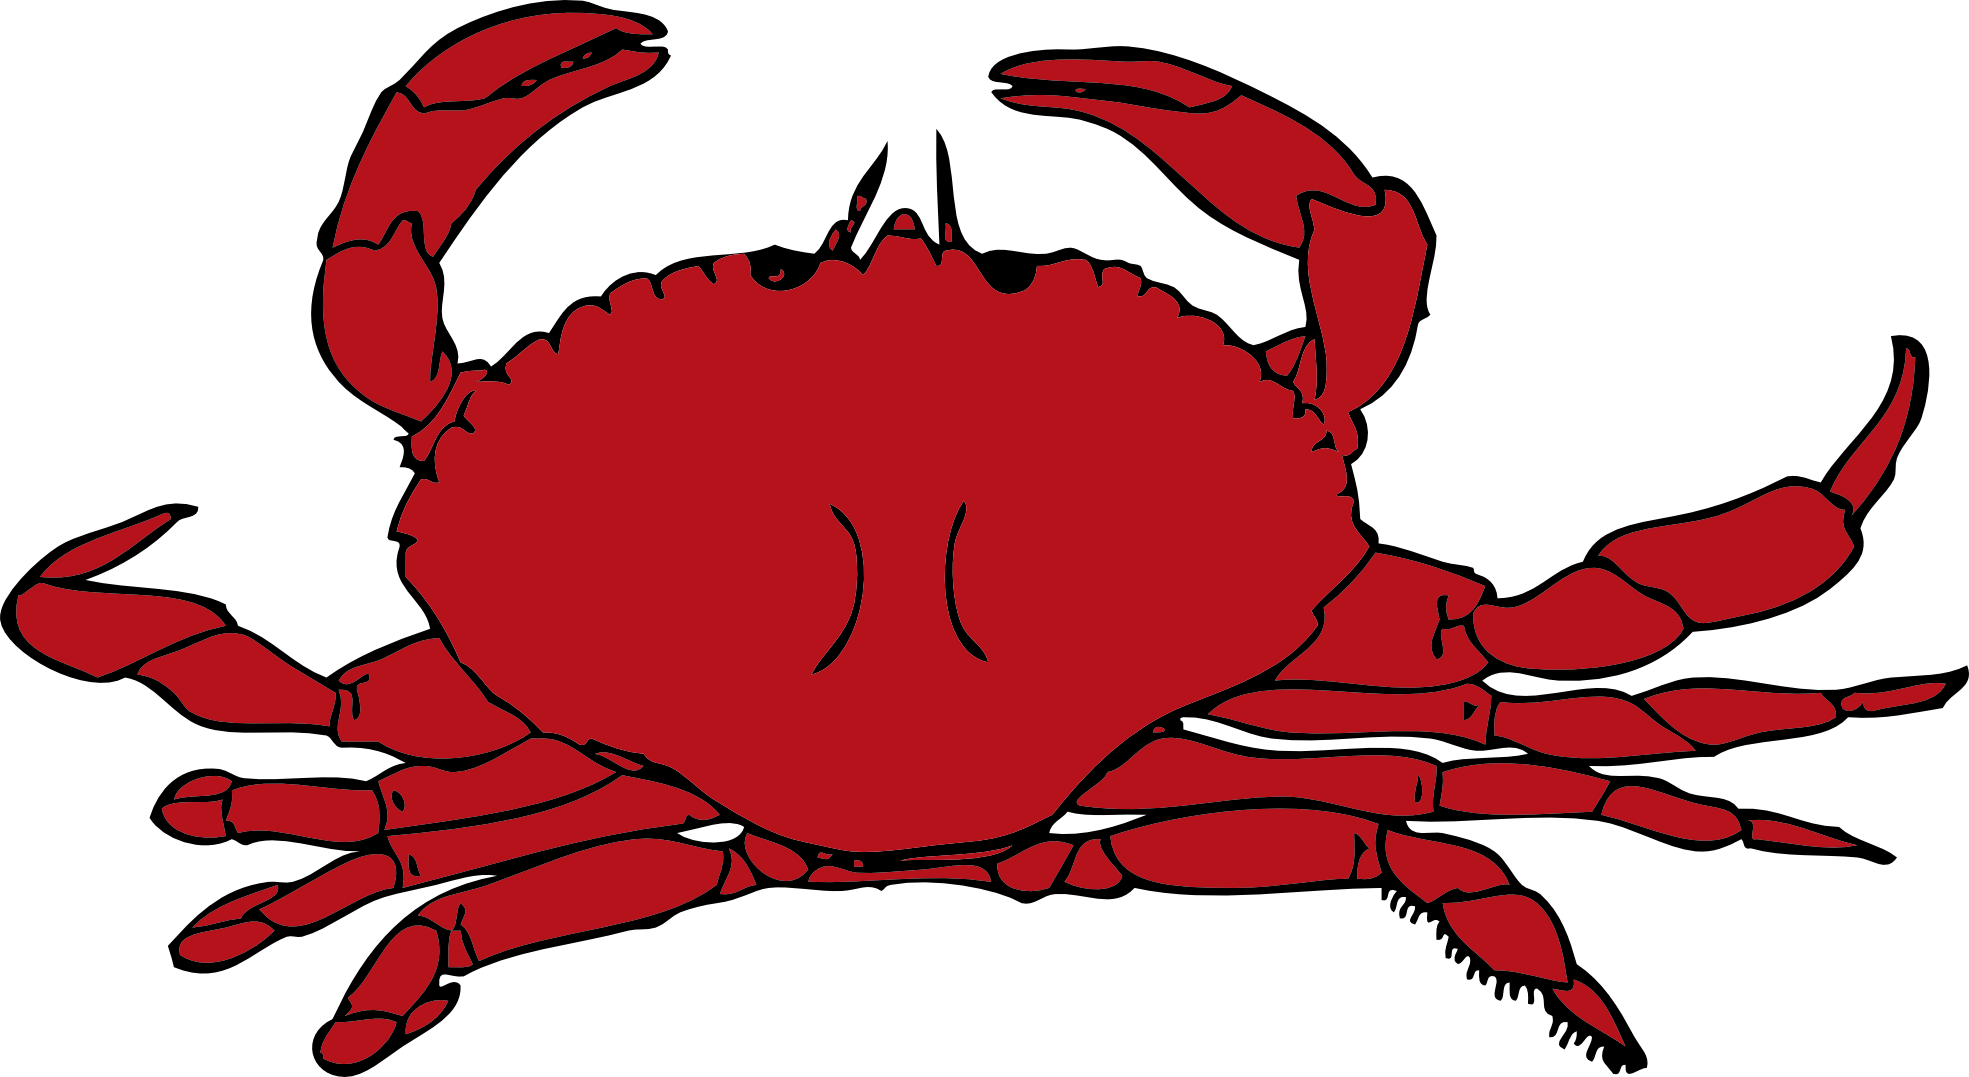 Cute Crab Clipart | Clipart Panda - Free Clipart Images